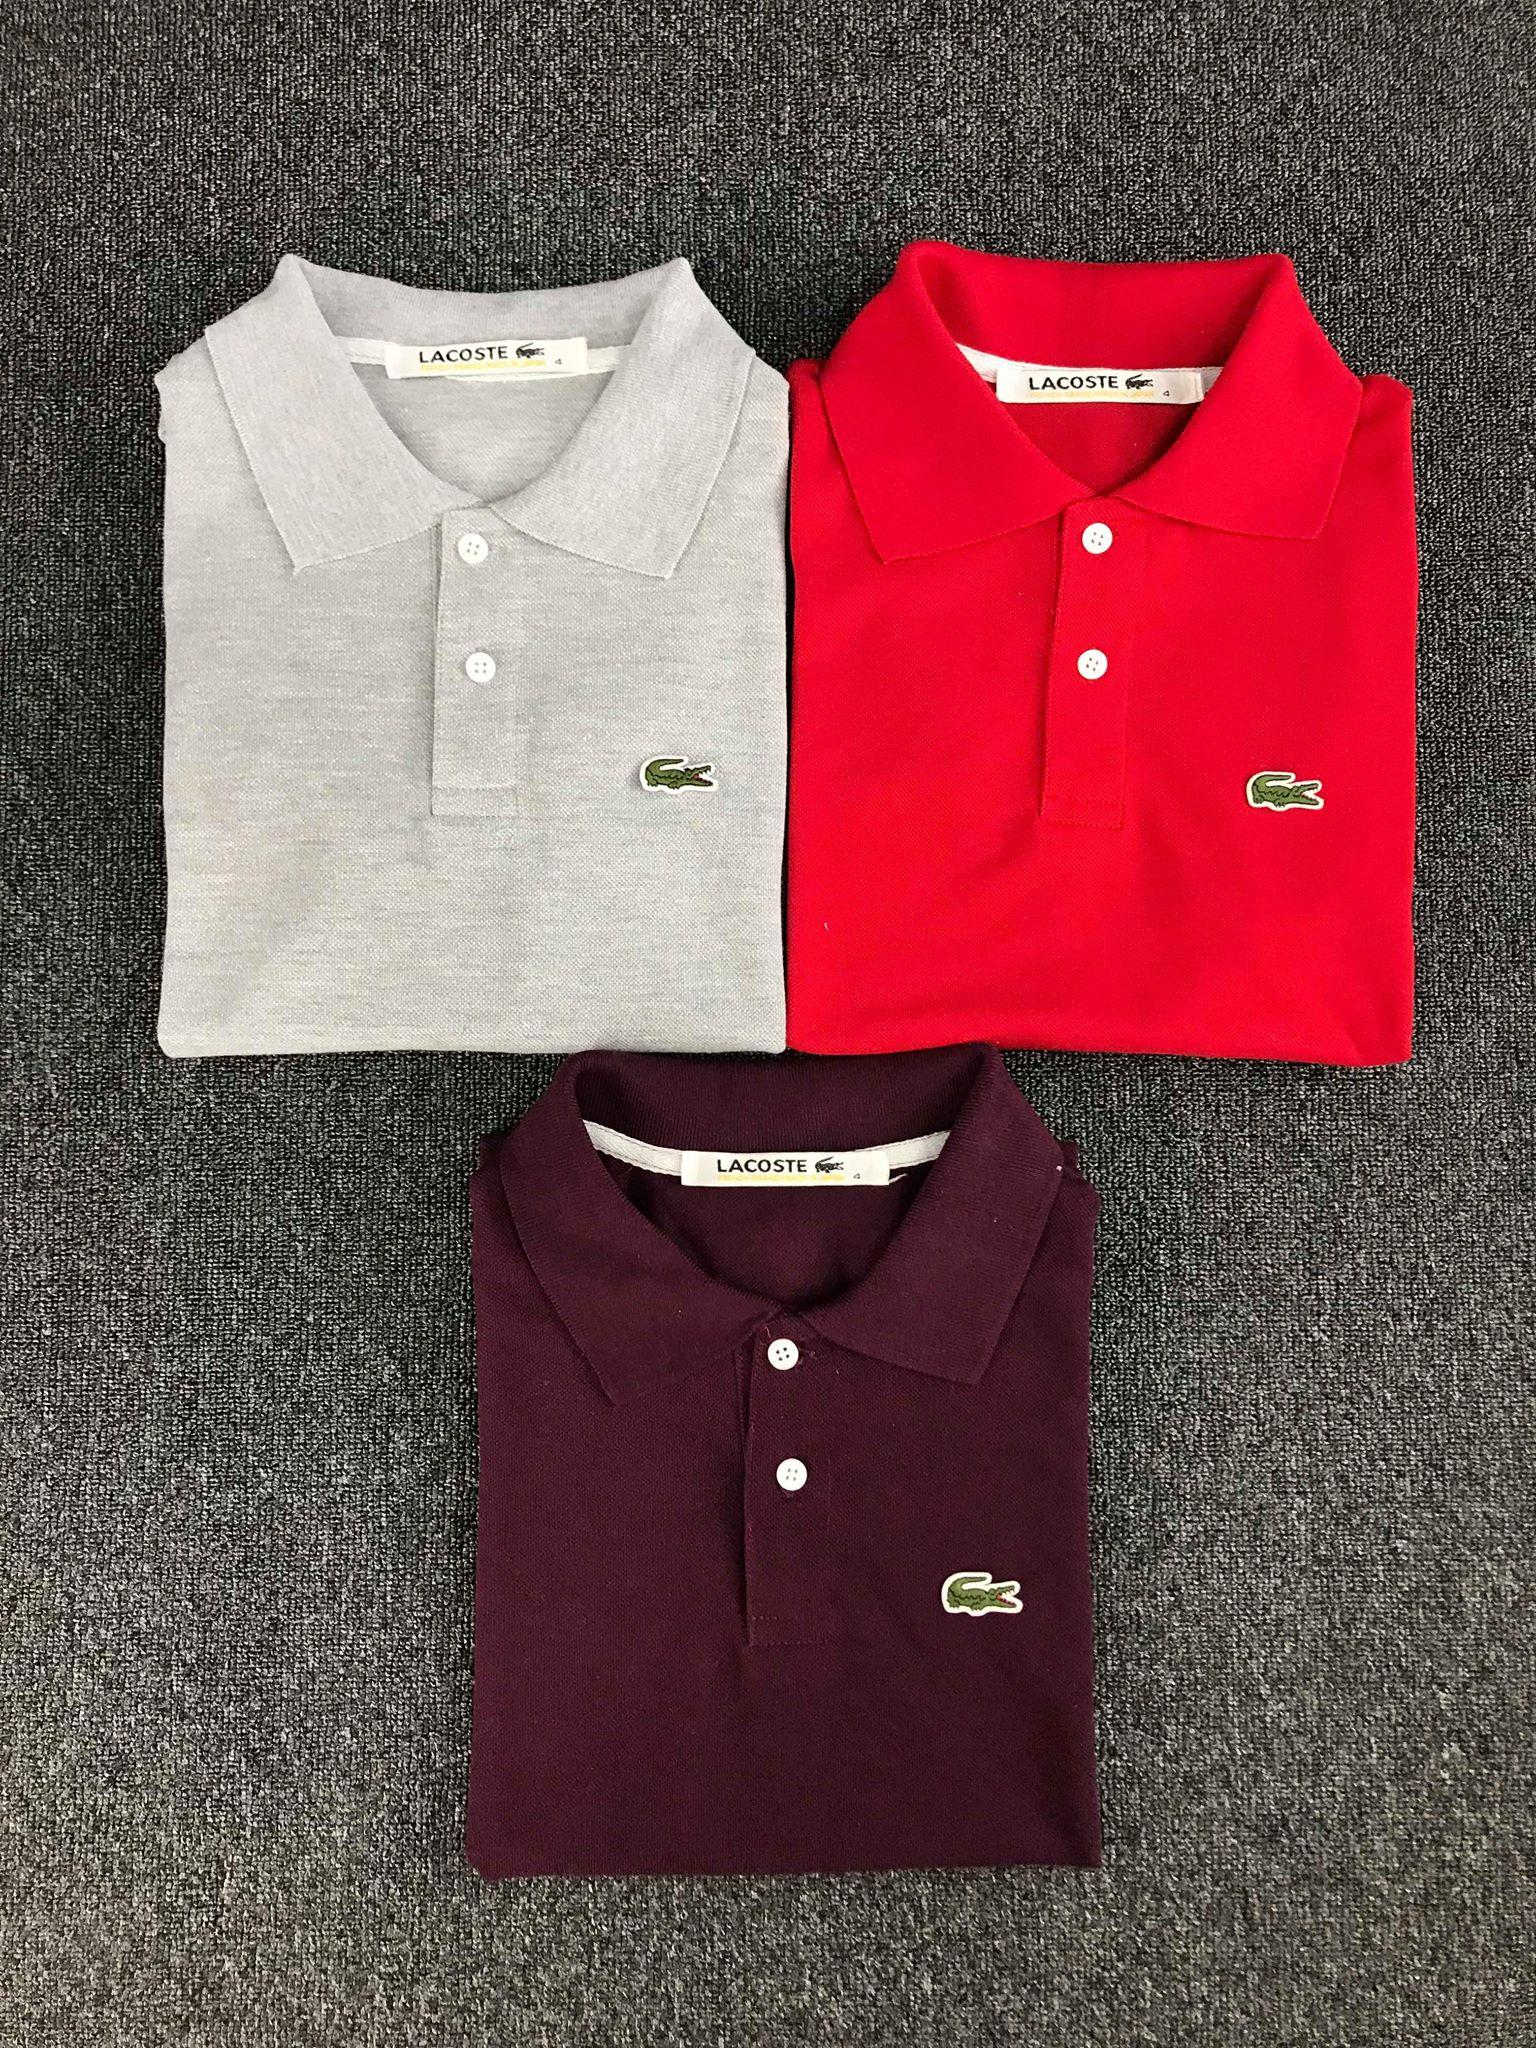 91f65eb0c1d92 Lacoste Philippines - Lacoste Polo for Men for sale - prices ...